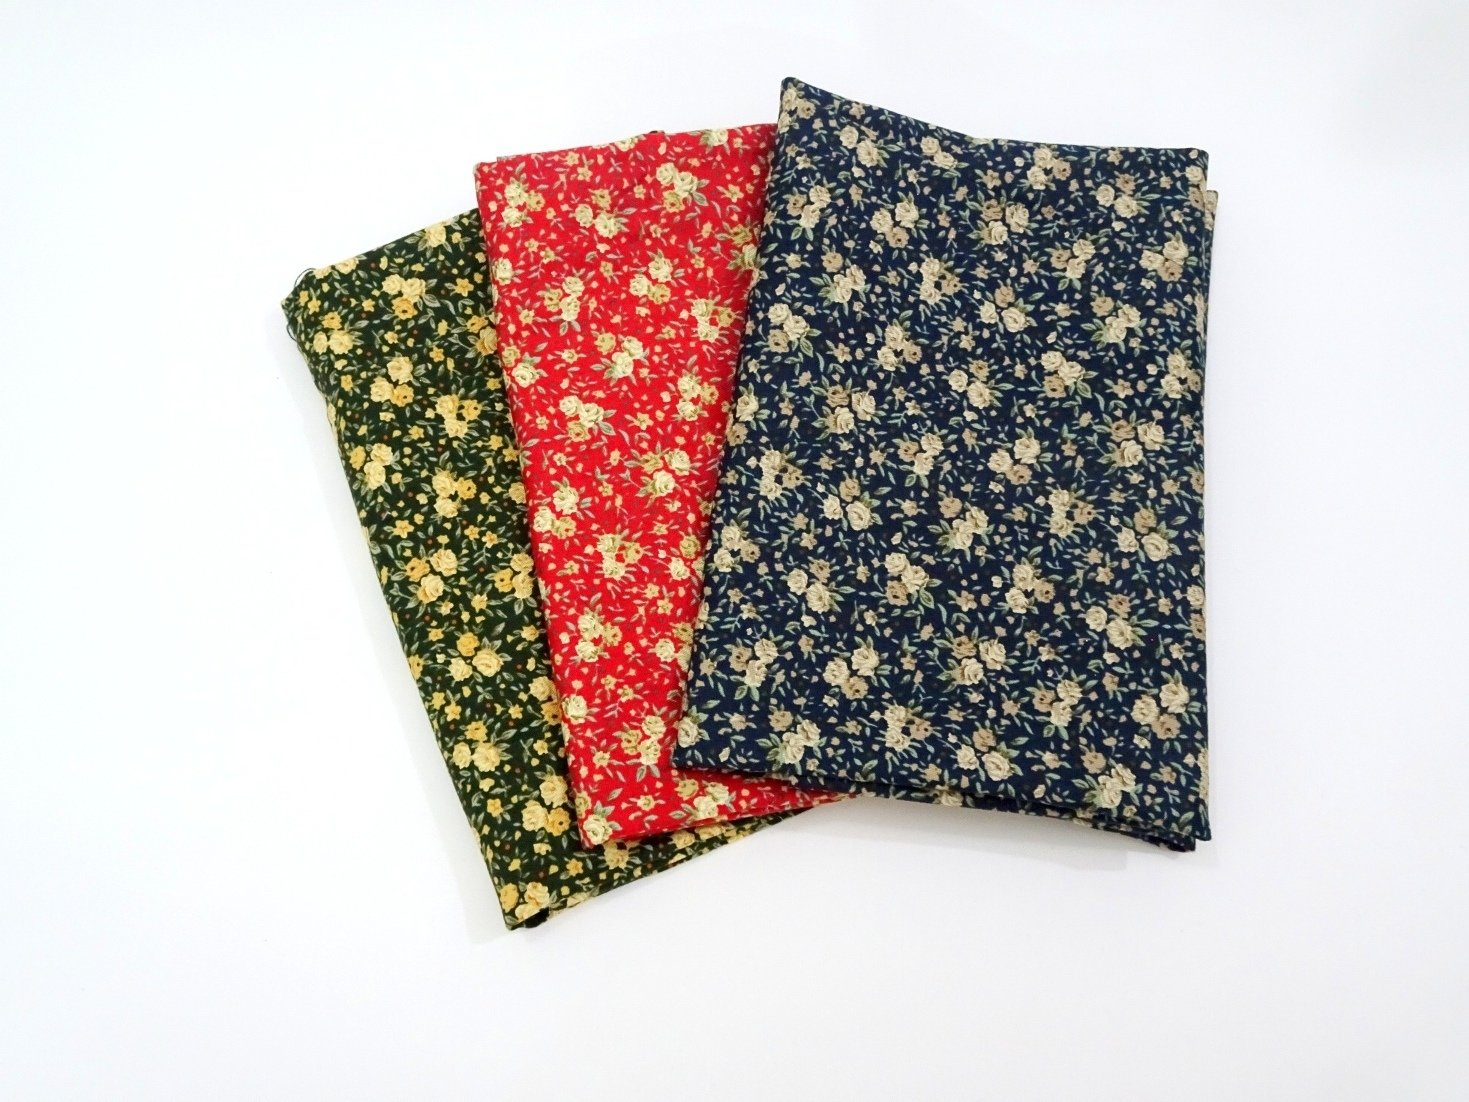 Floral Fat Quarter Bundle - Japan Design Cotton fabric - Precut Fabric